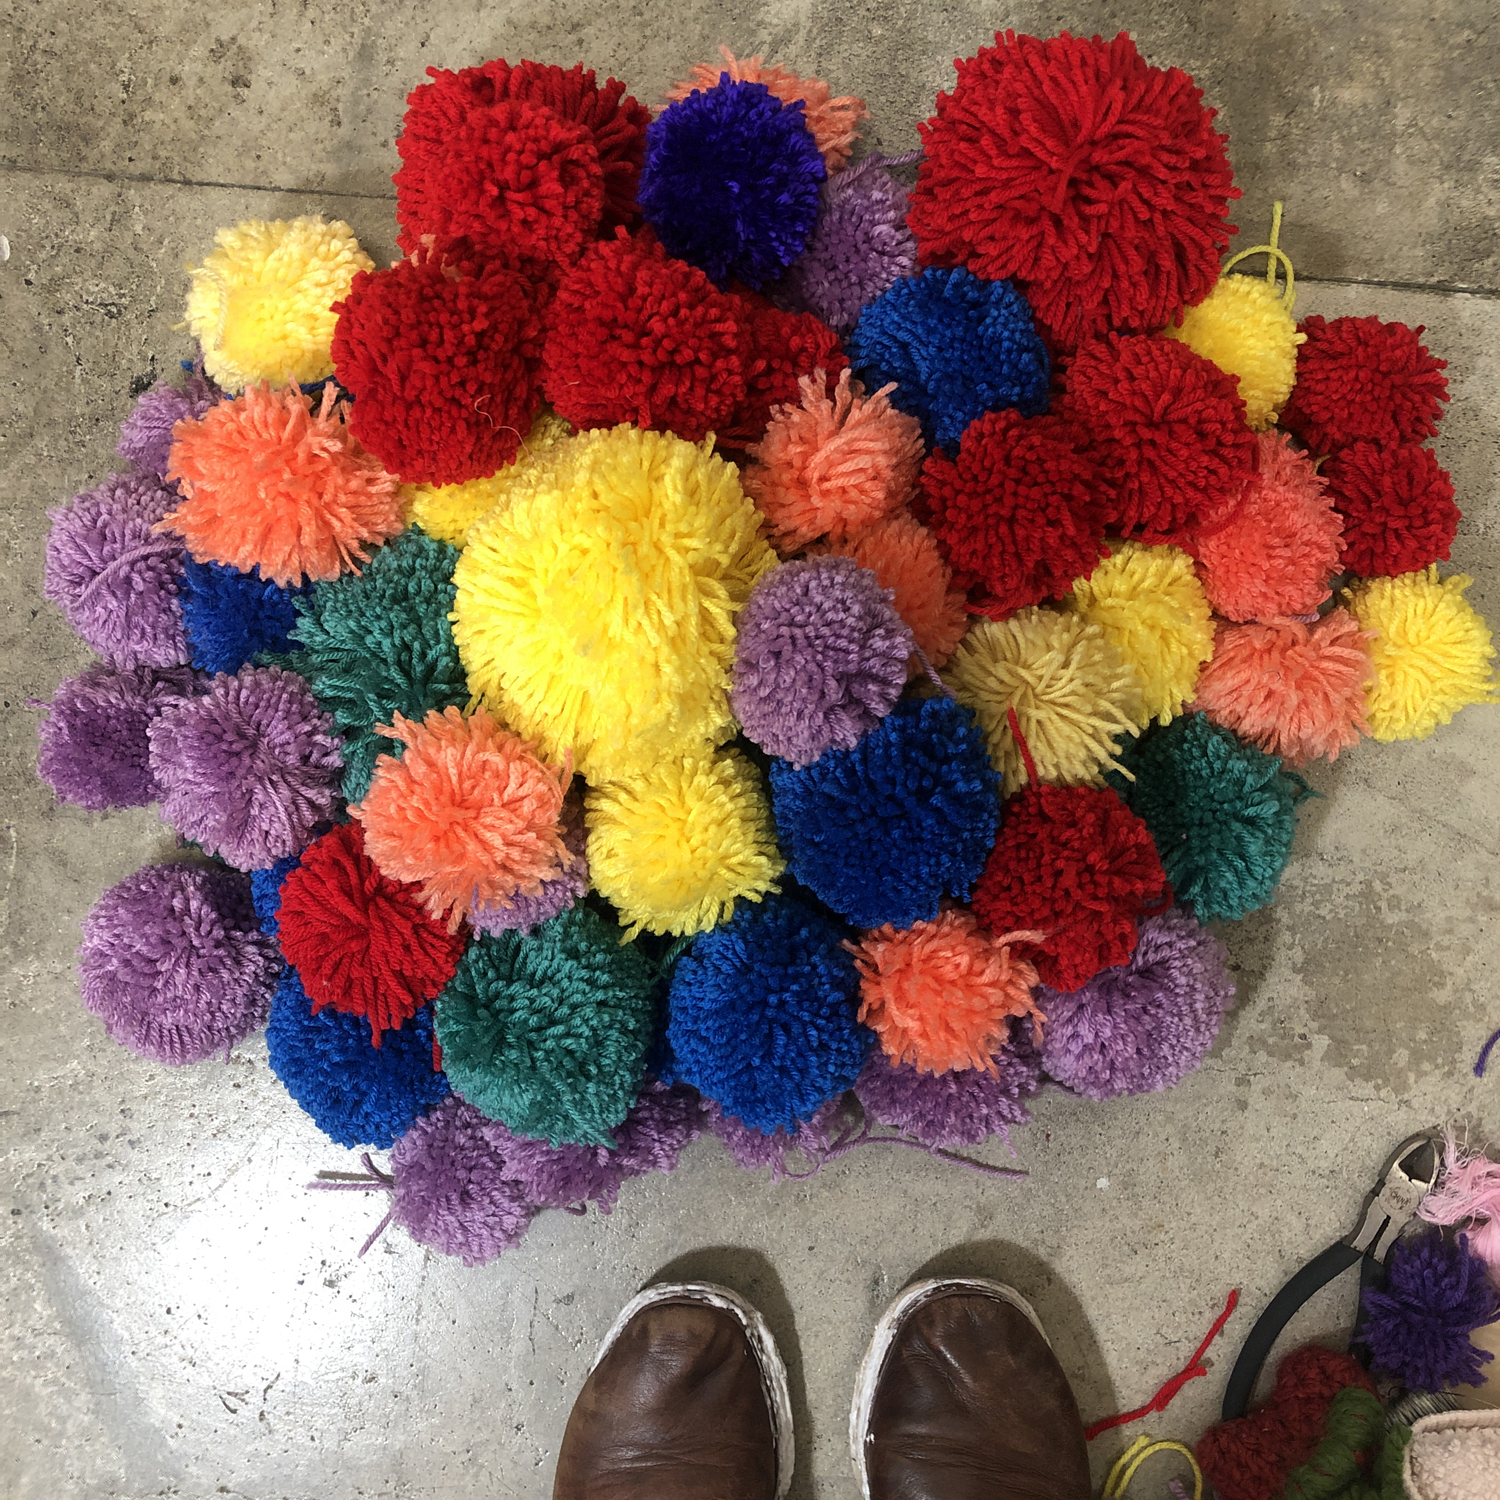 Finished Pom-Poms